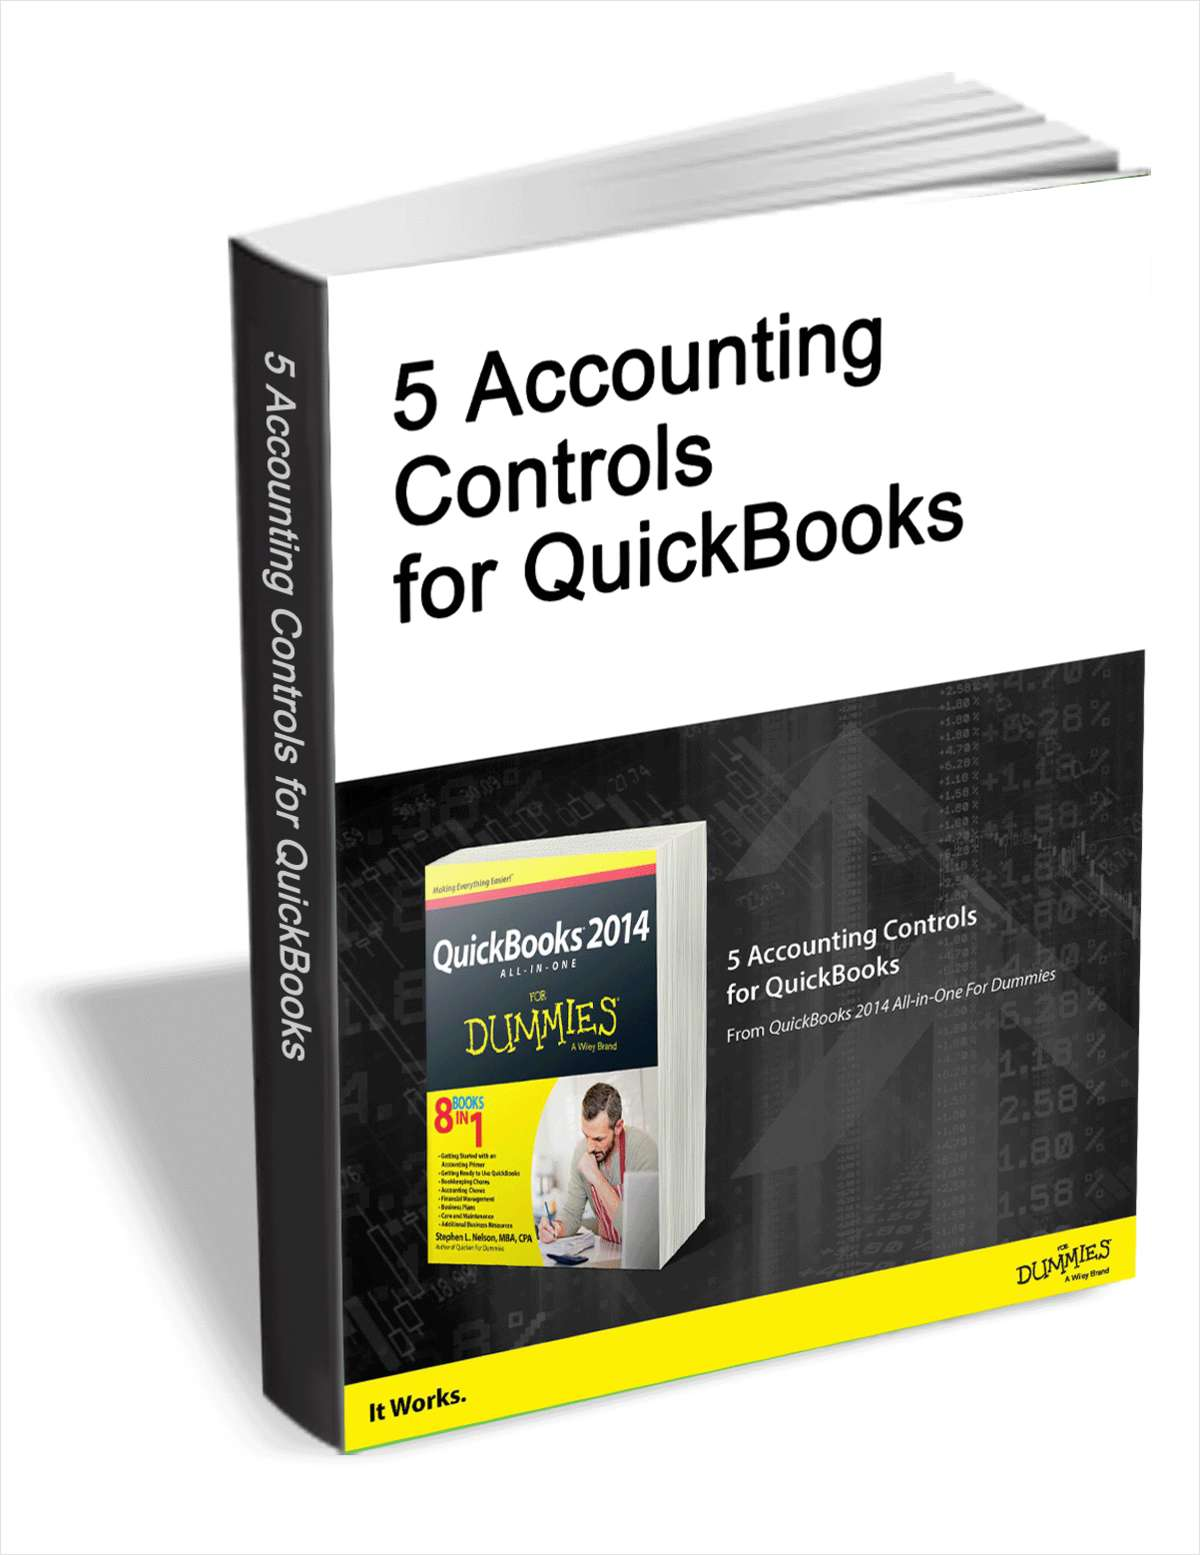 5 Accounting Controls for QuickBooks